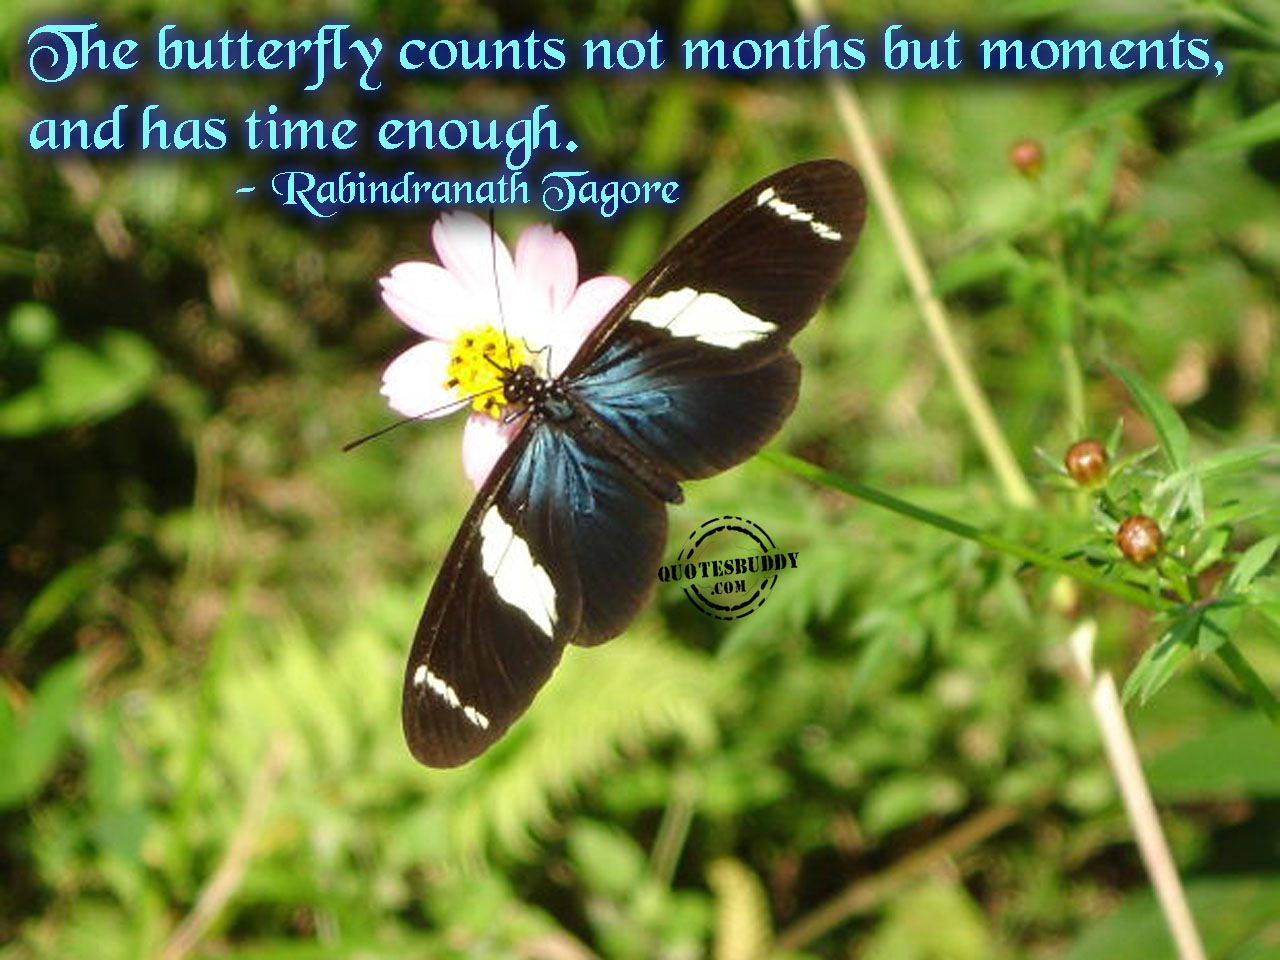 The Butterfly Counts Not Months But Moments, And Has Time Enough. - Rabindranath Tagore.